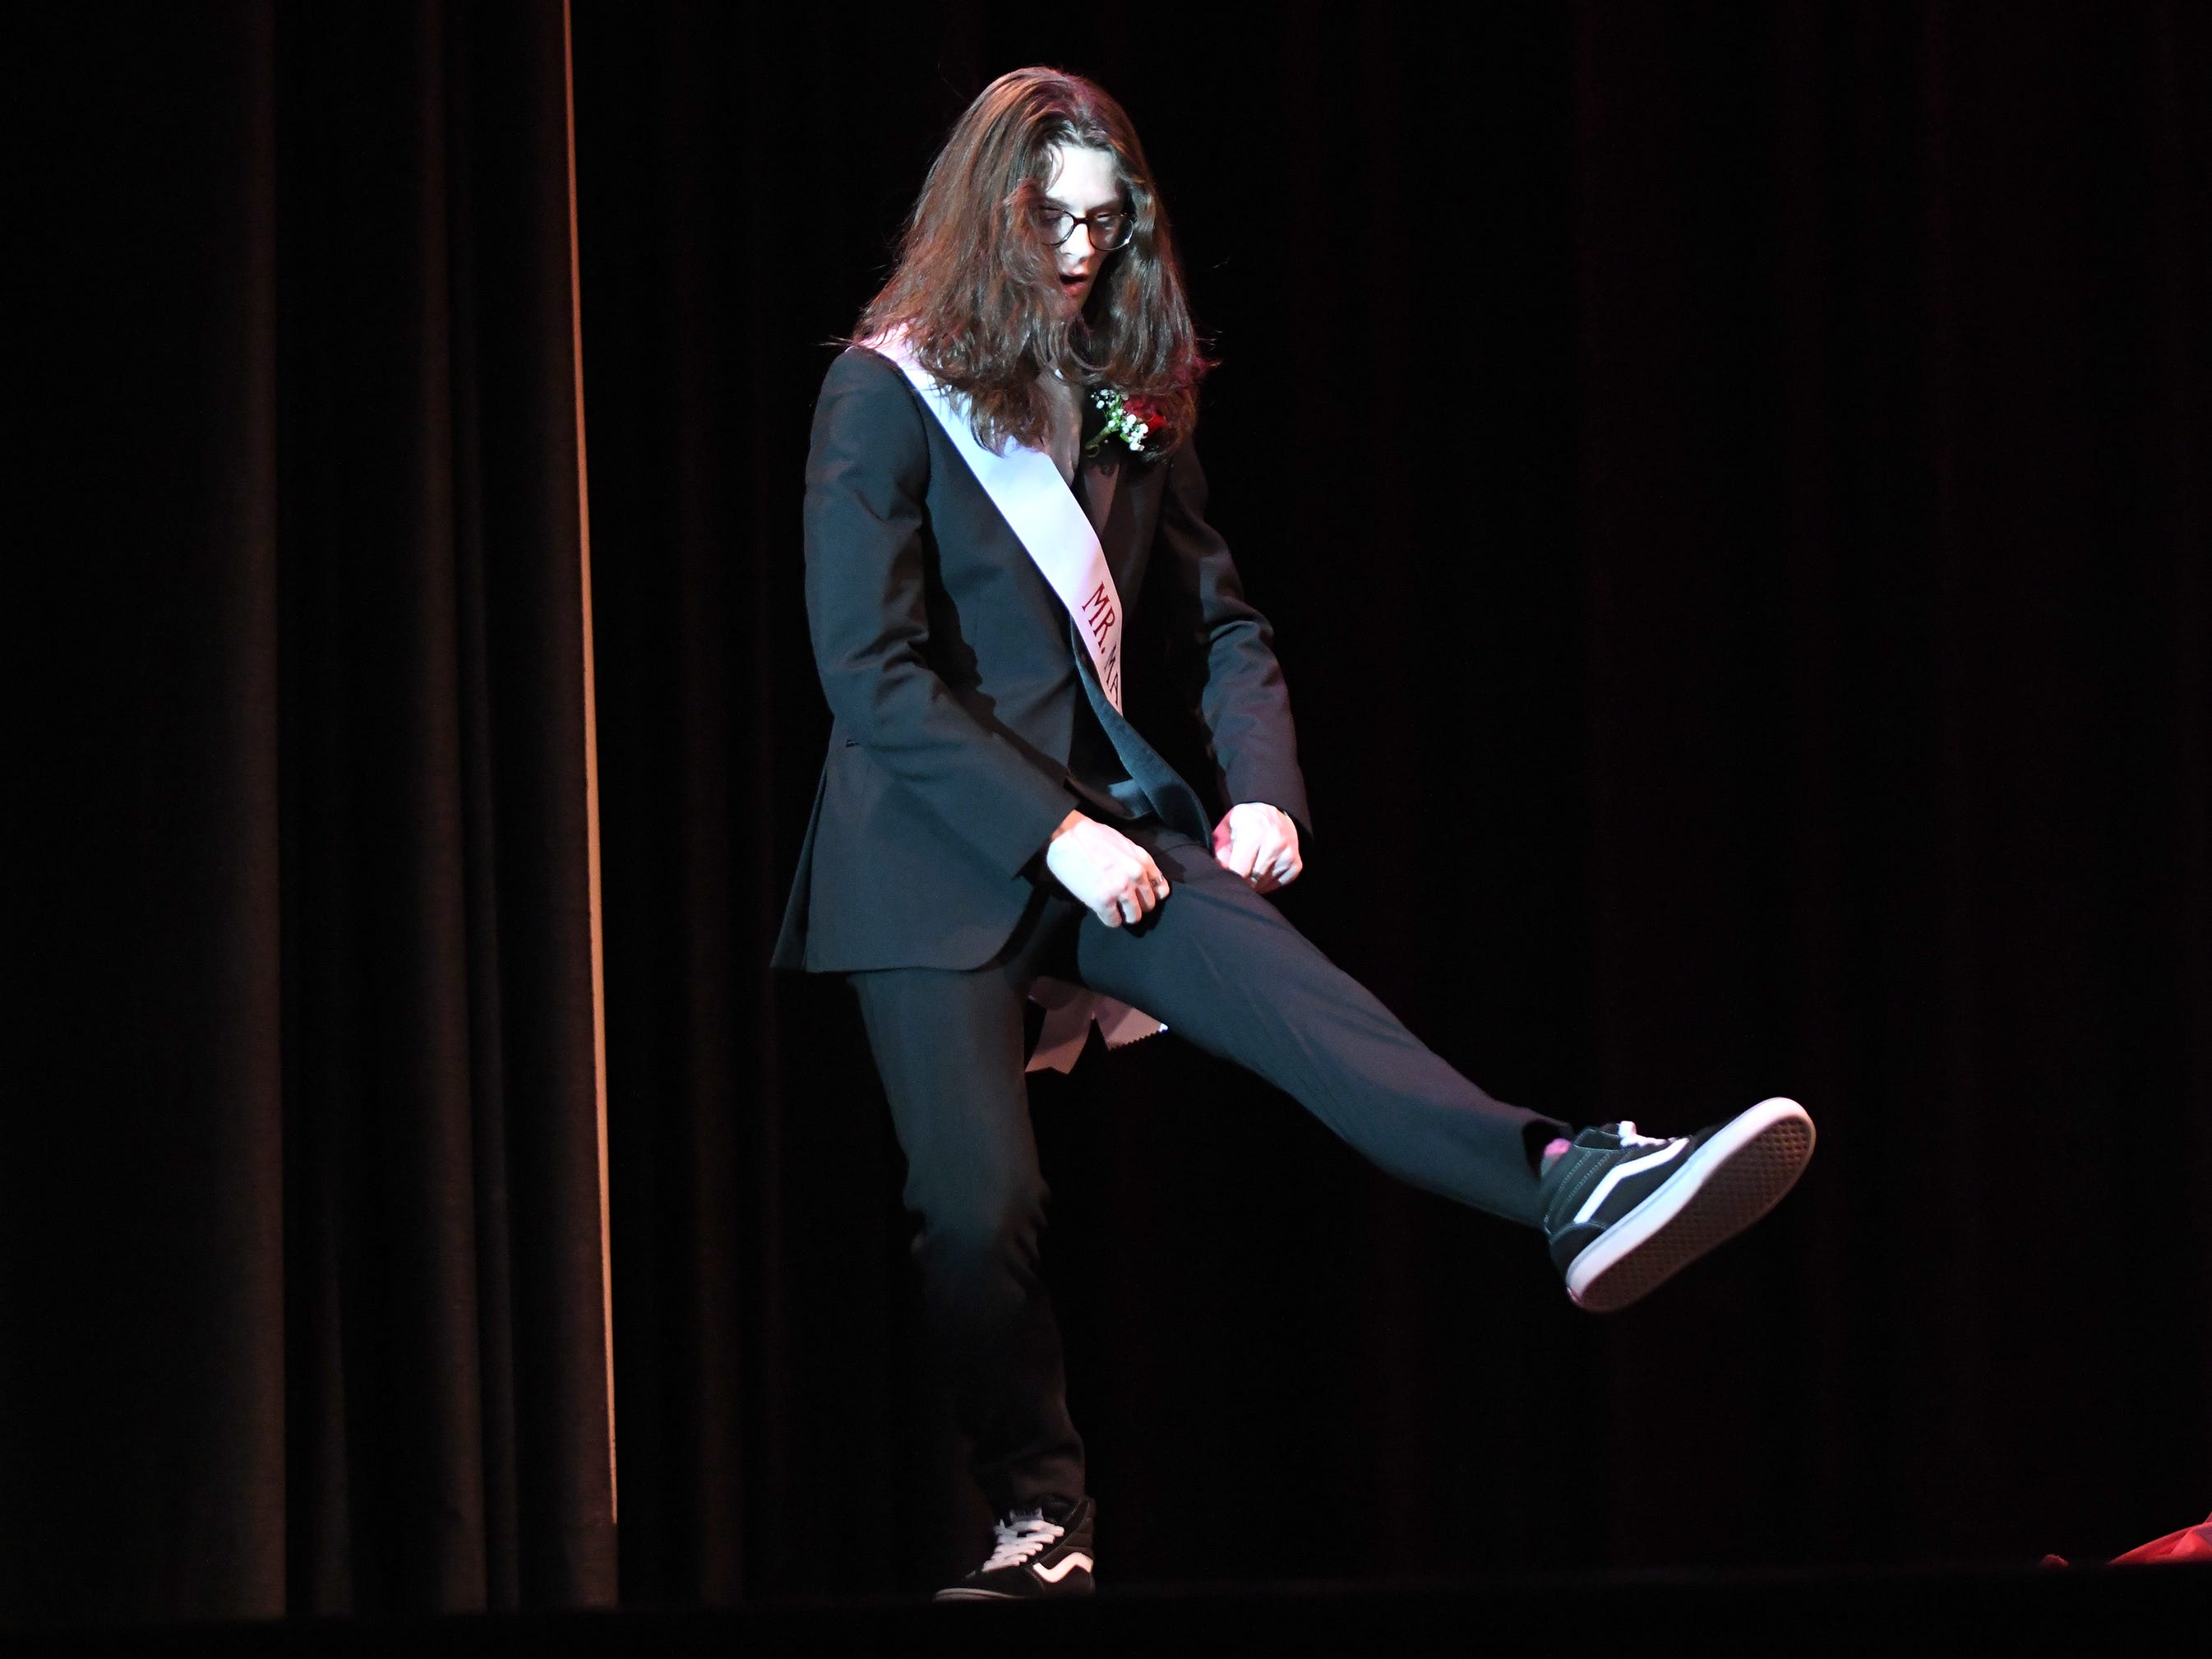 Trey Luciano shows off his formal wear during Mr. Vineland 2019 at Vineland High School on Thursday, January 10.